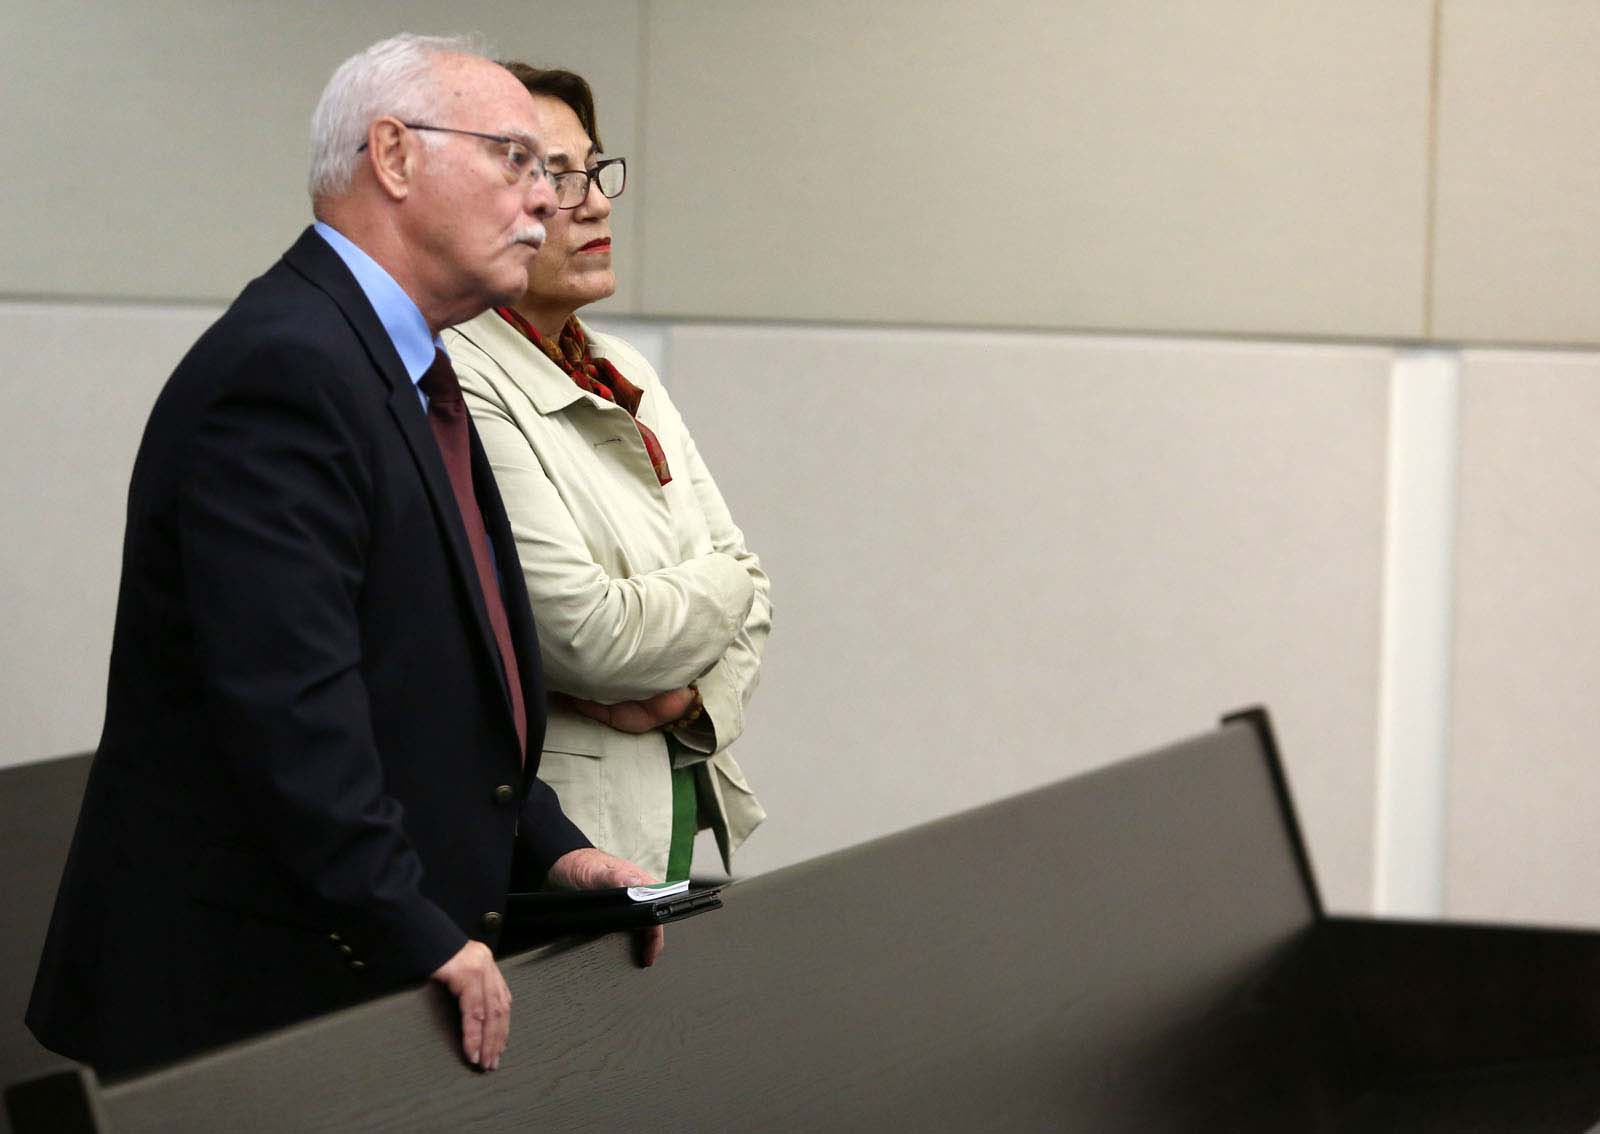 Pedro Bravo's parents Pedro Bravo and Azucena Duque listen to instructions from Circuit Court Judge James Colaw to their son about wether or not he should testify Thursday during Bravo's murder trial in courtroom 1B of the Alachua County Criminal Justice Center Wednesday, August 13, 2014.  Bravo is accused of killing University of Florida student Christian Aguilar.  (Doug Finger/The Gainesville Sun/Pool)